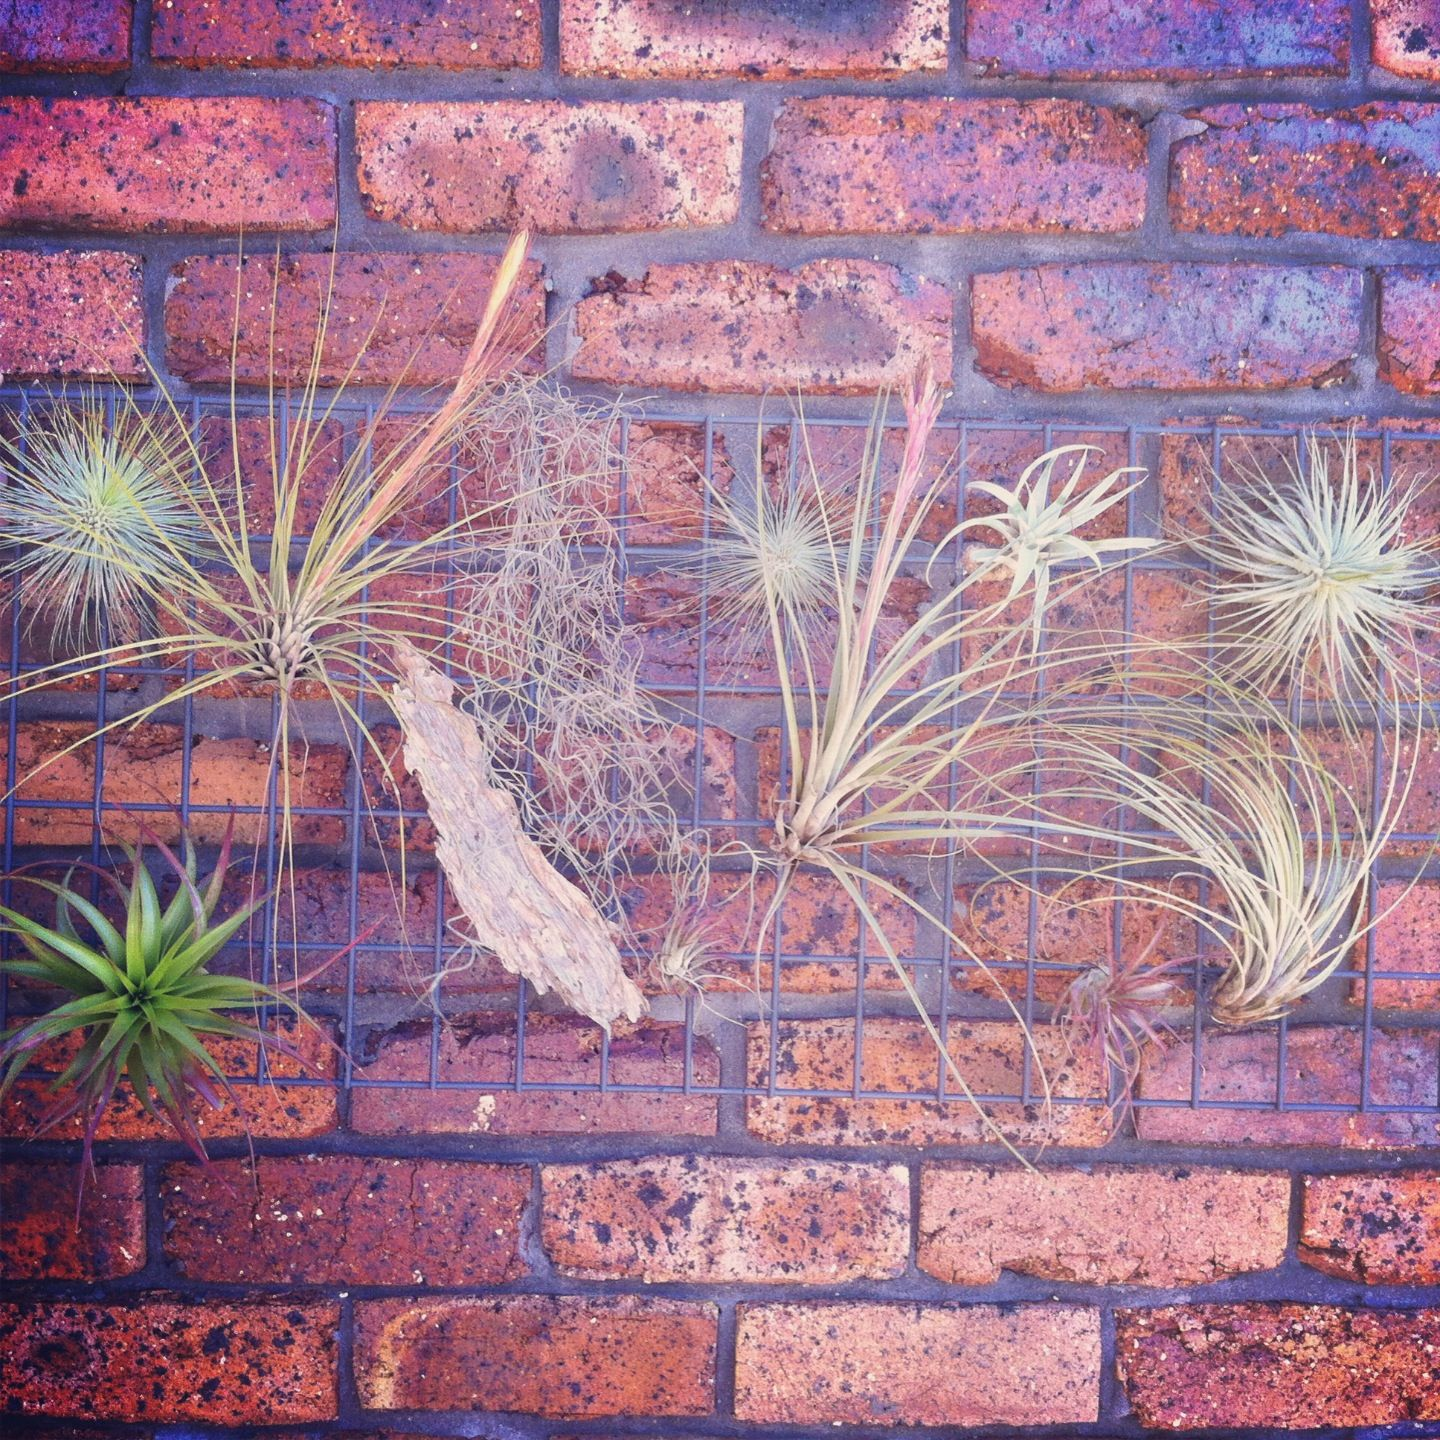 Tillandsia Airplant Frame On Vertical Brick Garden Wall By Airplant